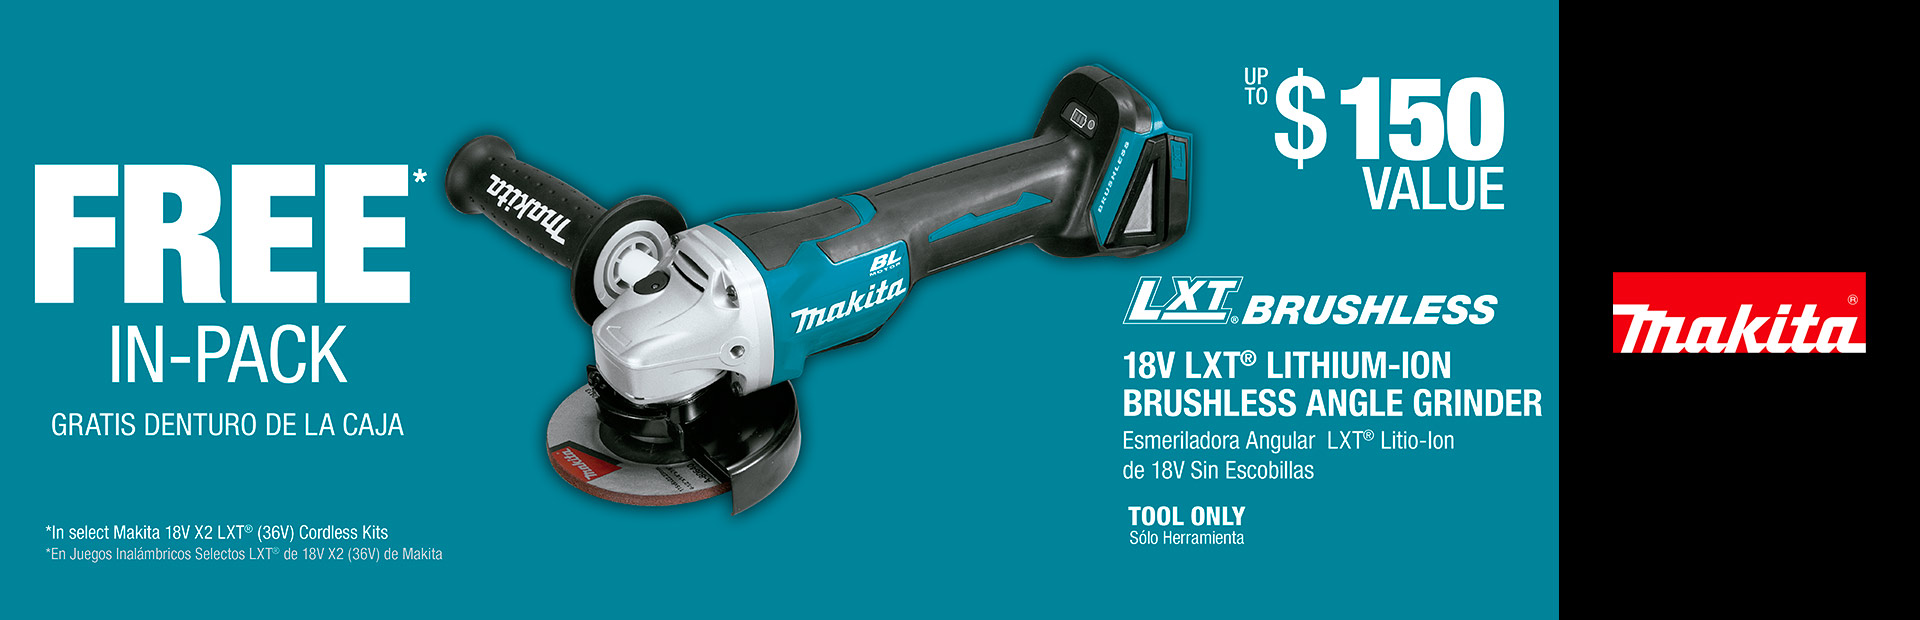 Makita: GET A FREE 18V LXT® LITHIUM-ION ANGLE GRINDER